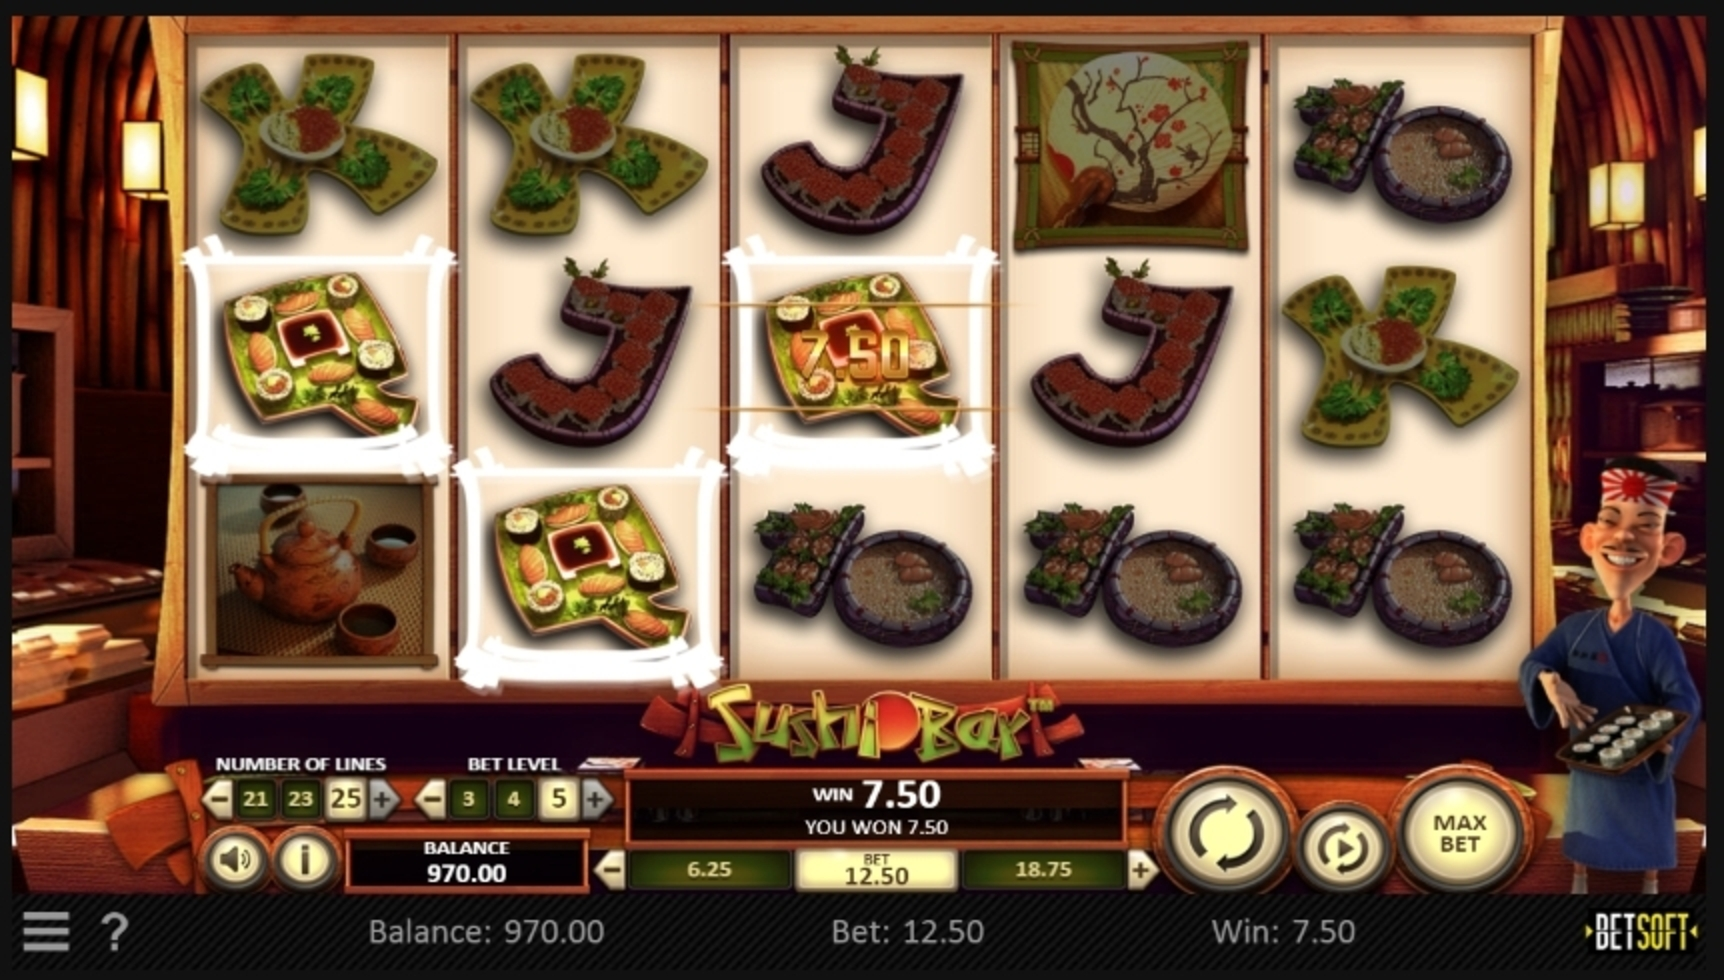 Win Money in Sushi Bar Free Slot Game by Betsoft